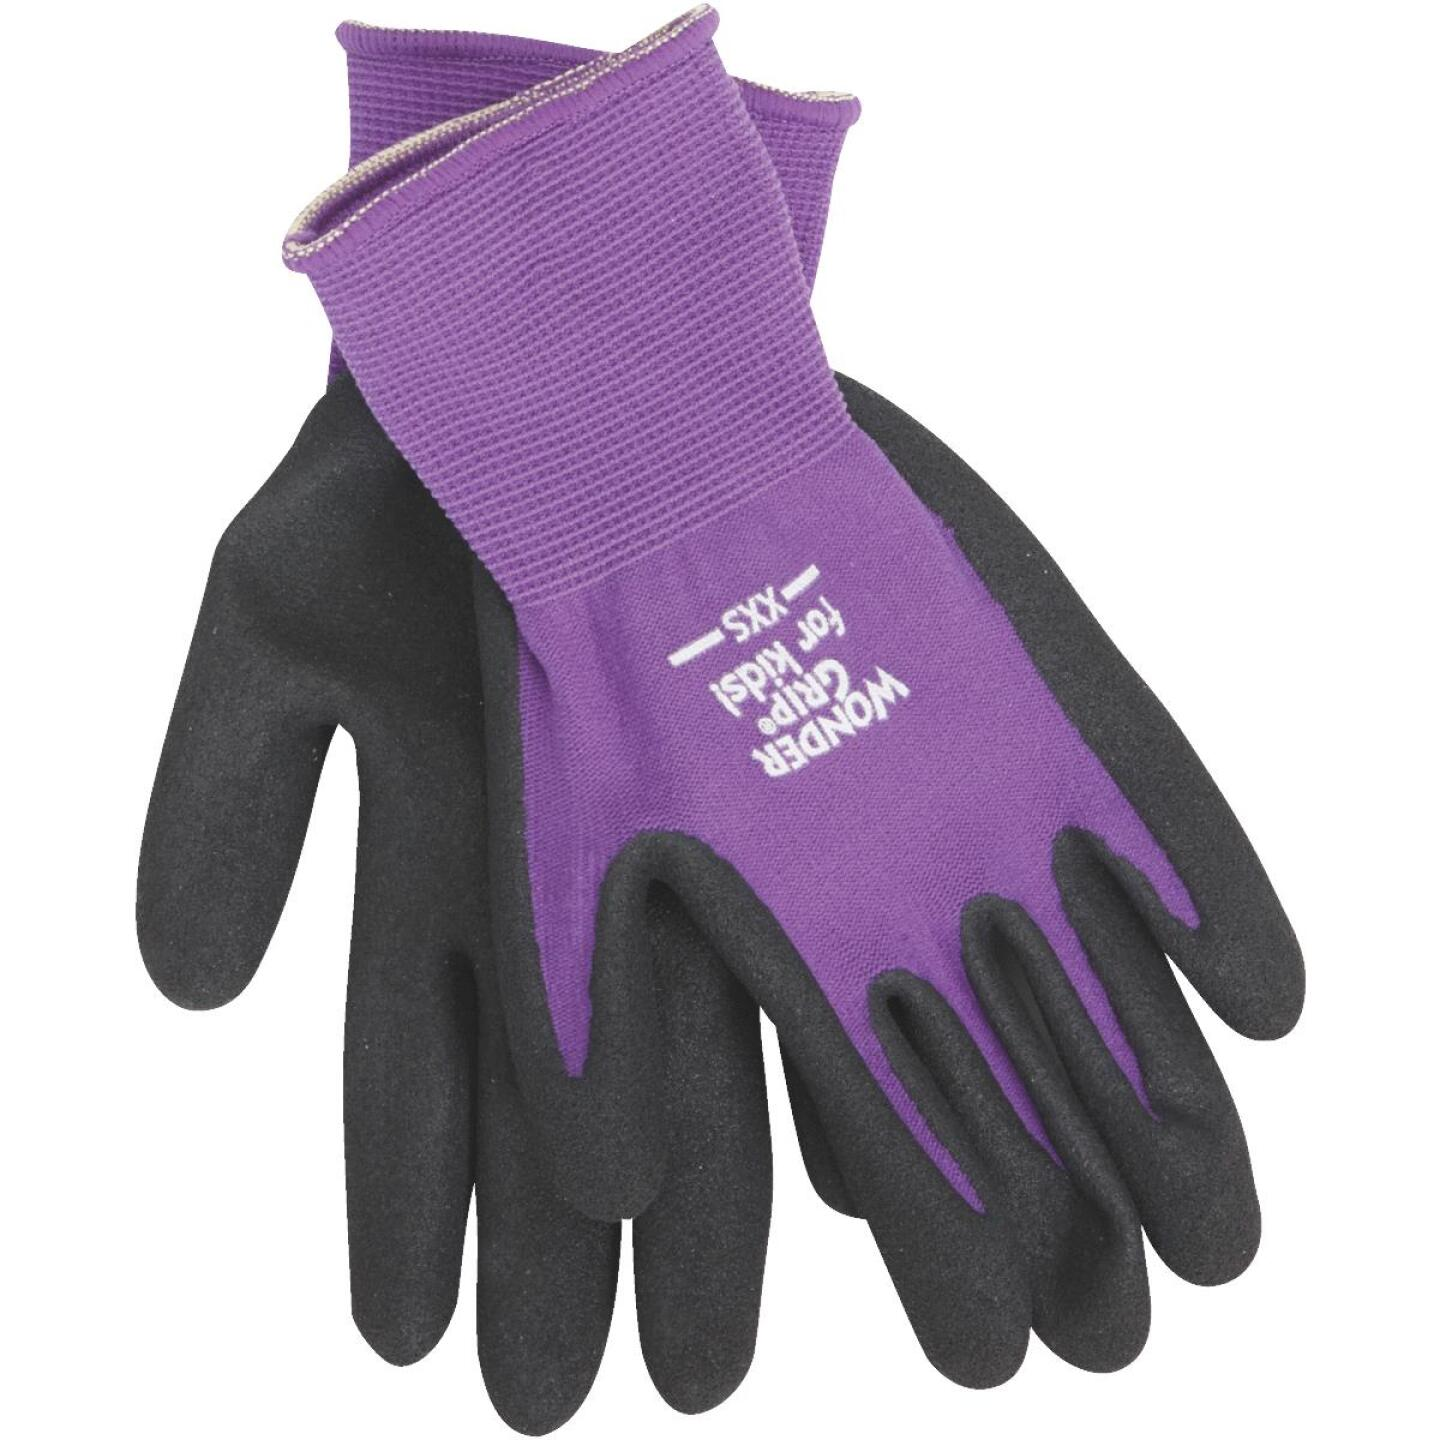 Wonder Grip Kid's Nylon & Spandex Glove Image 1